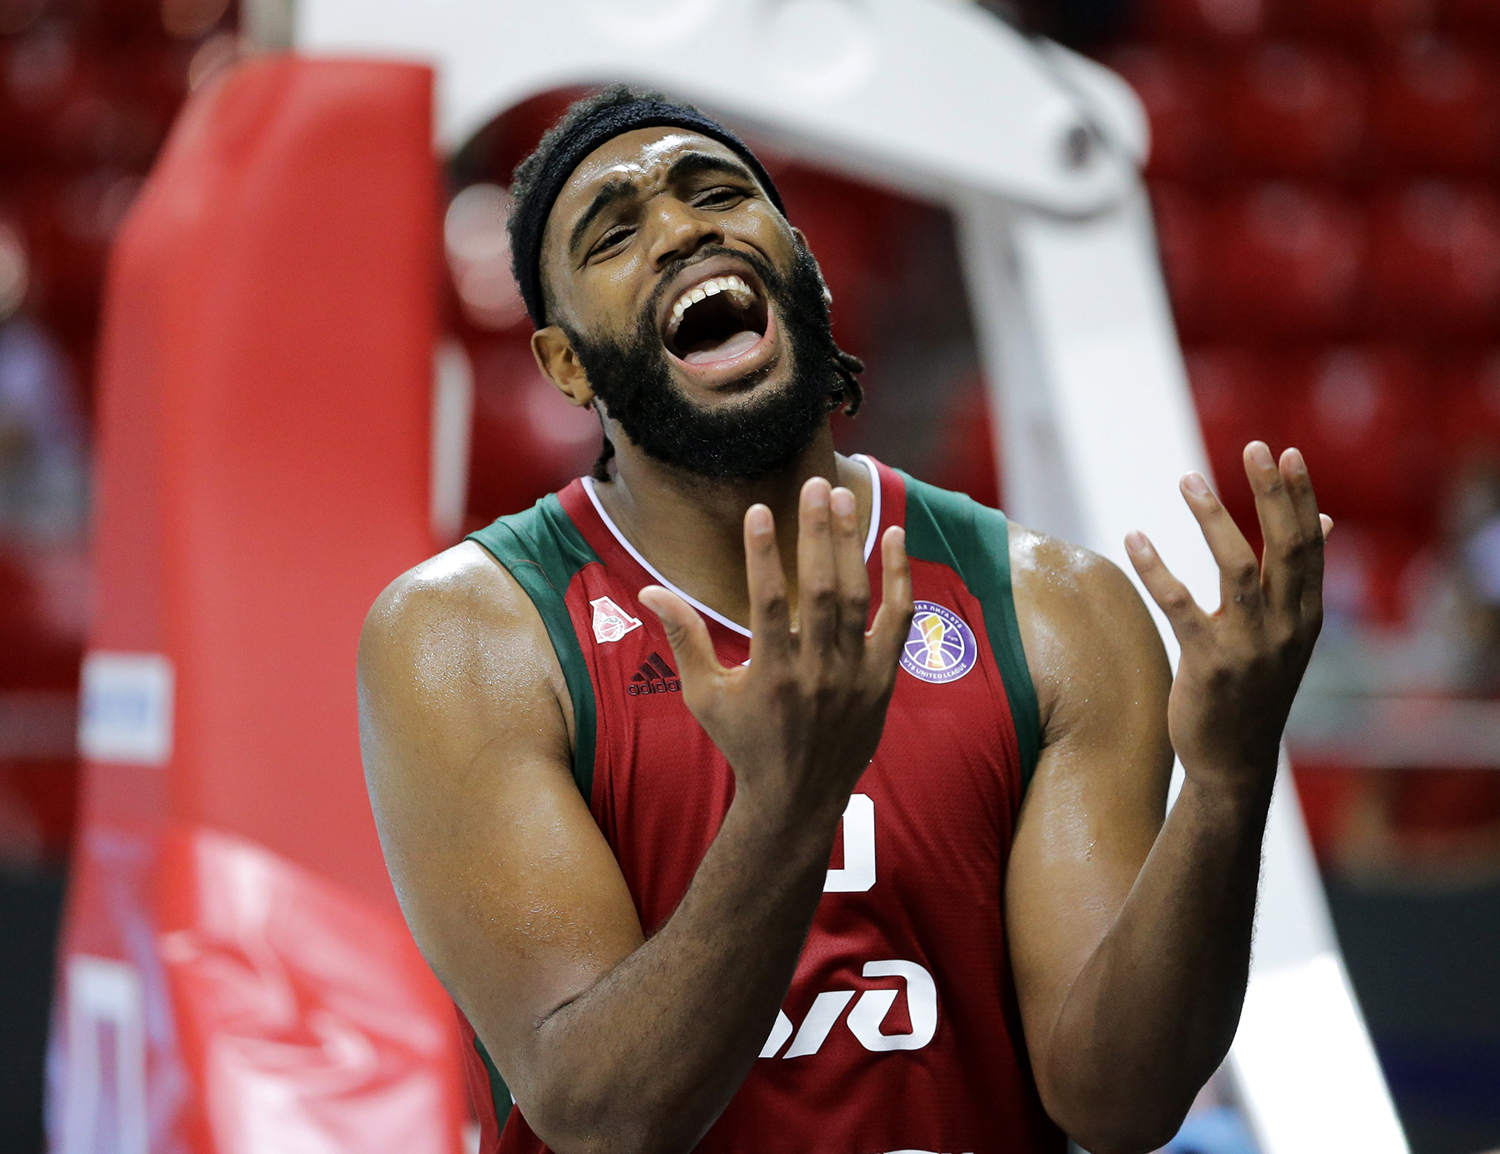 Alan Williams: I can't place myself among best European centers yet